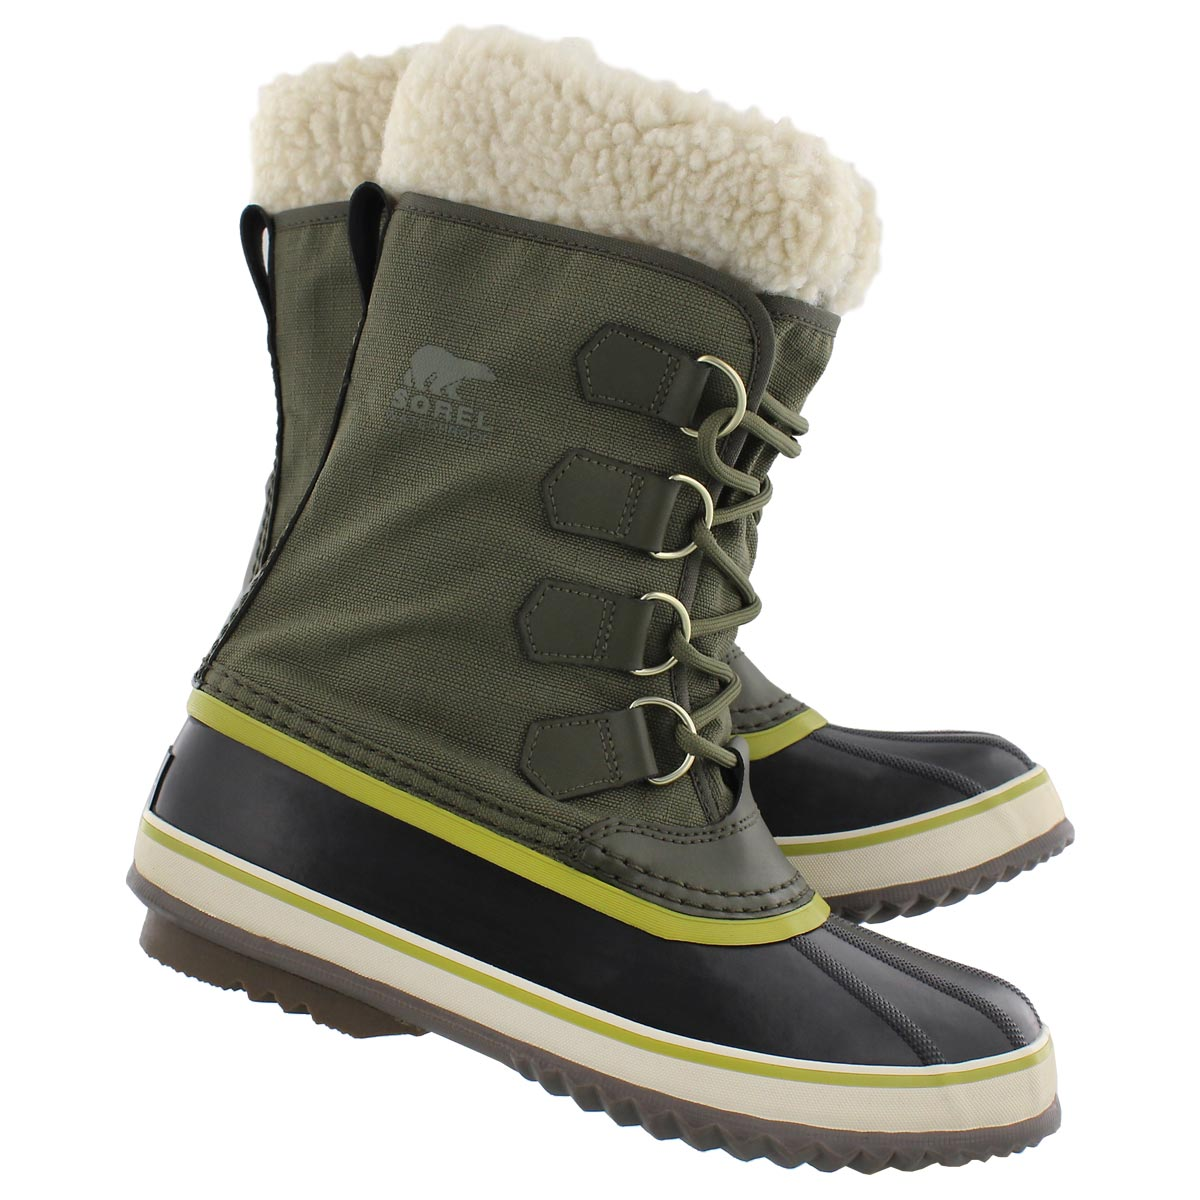 Lds Winter Carnival peatmoss winter boot